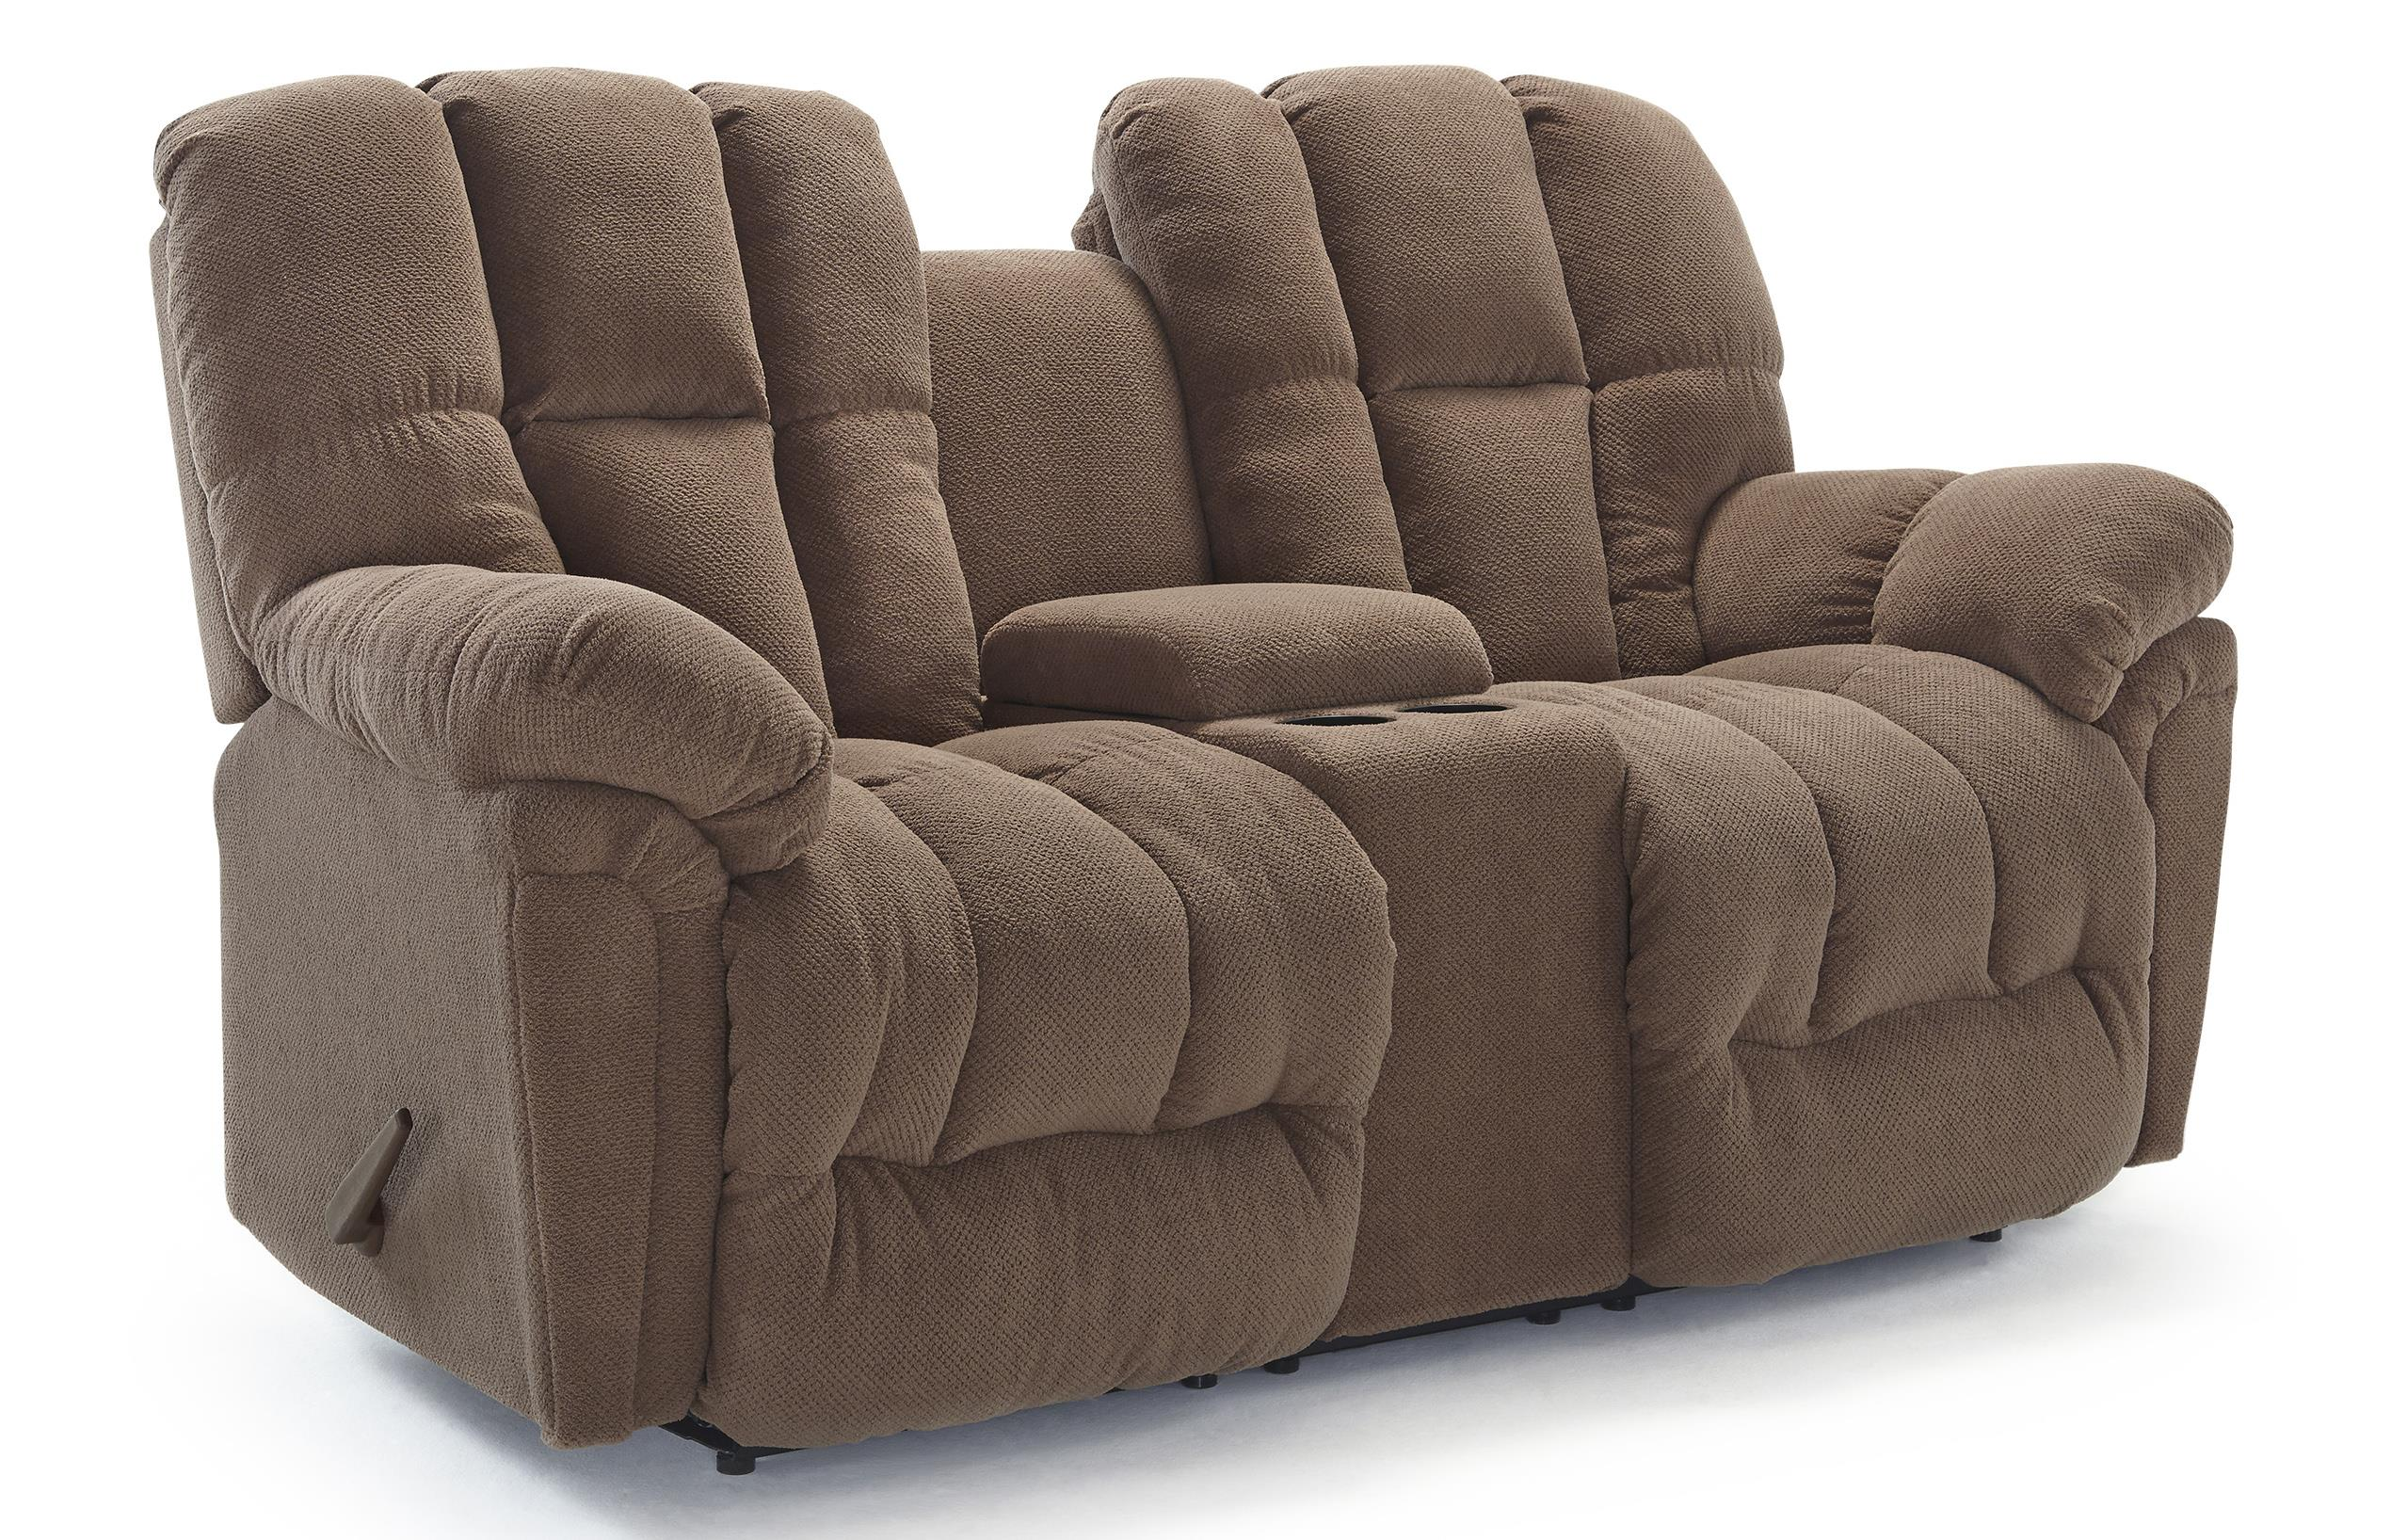 Lucas Plush Power Rocking Reclining Loveseat With Drink Console By Best Home Furnishings Wolf